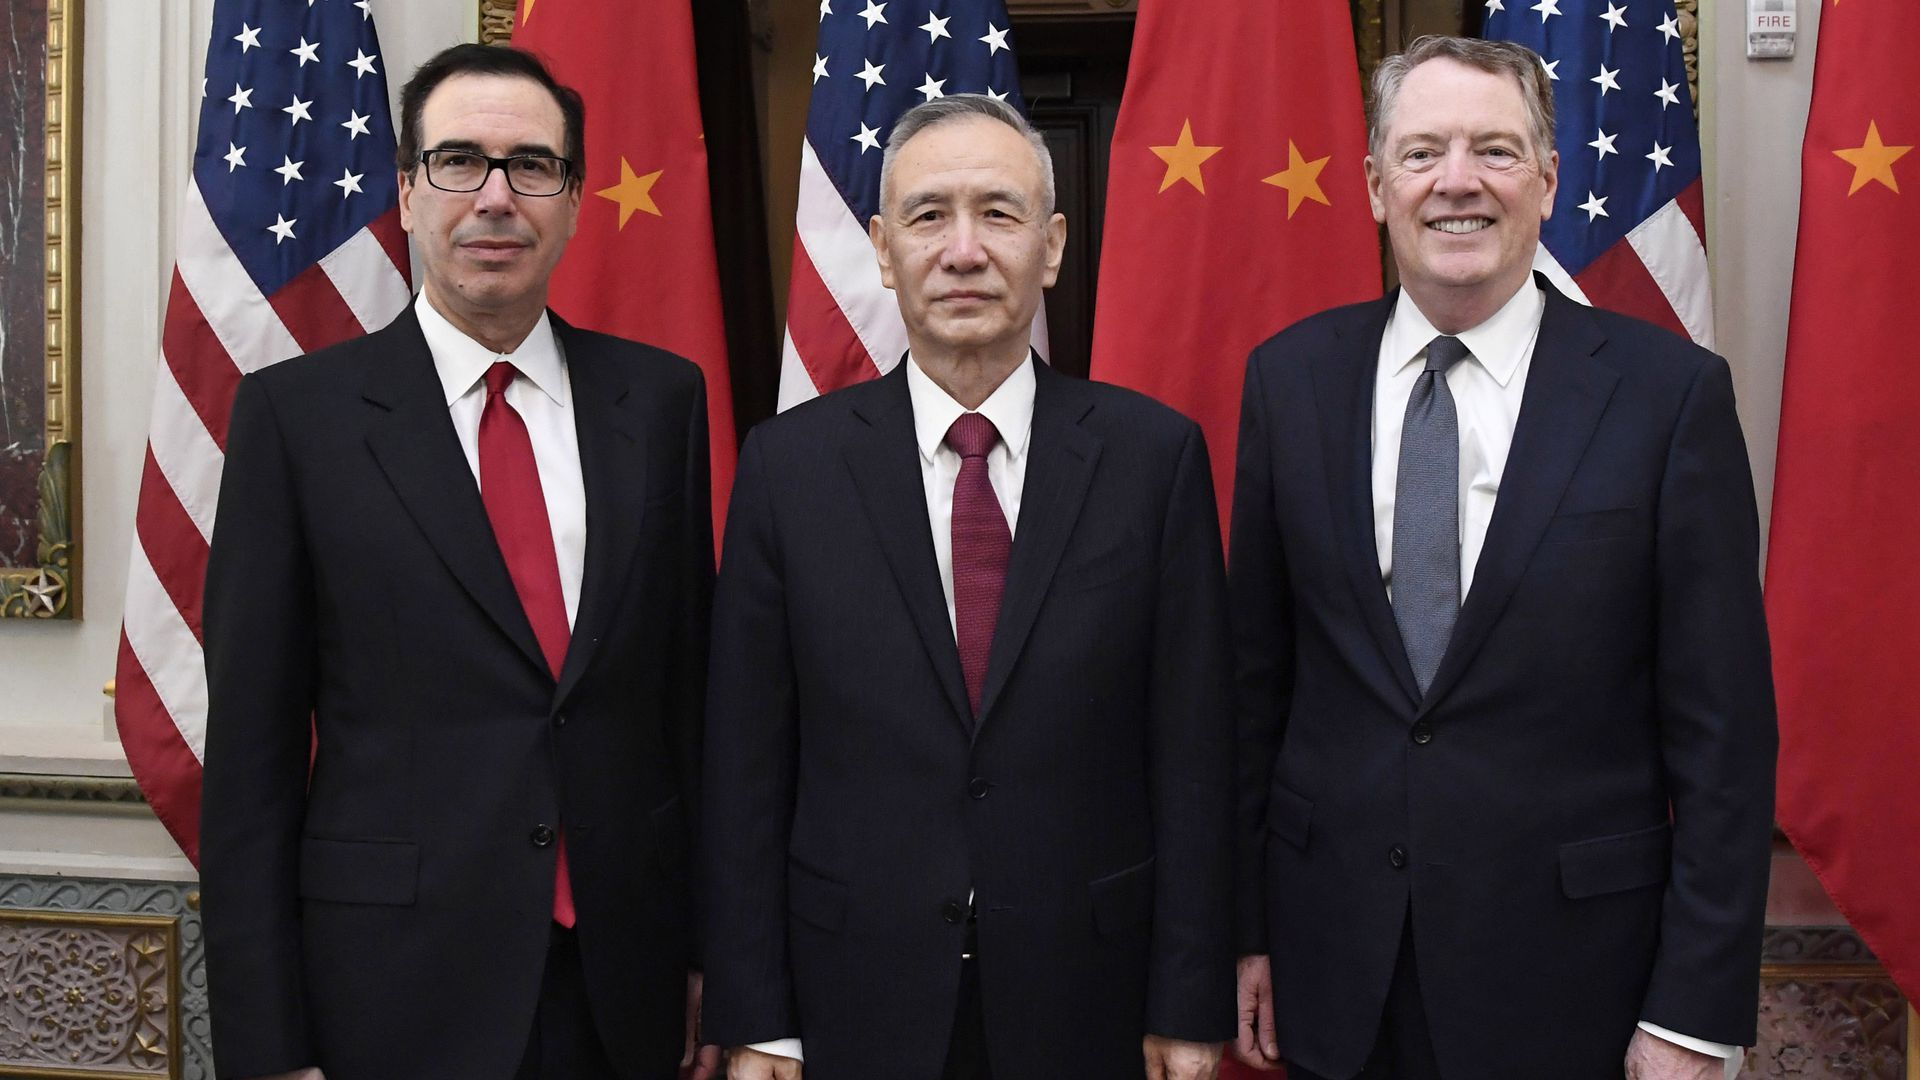 Photo of China's Liu He and U.S.' Lighthizer and Mnuchin for trade talks